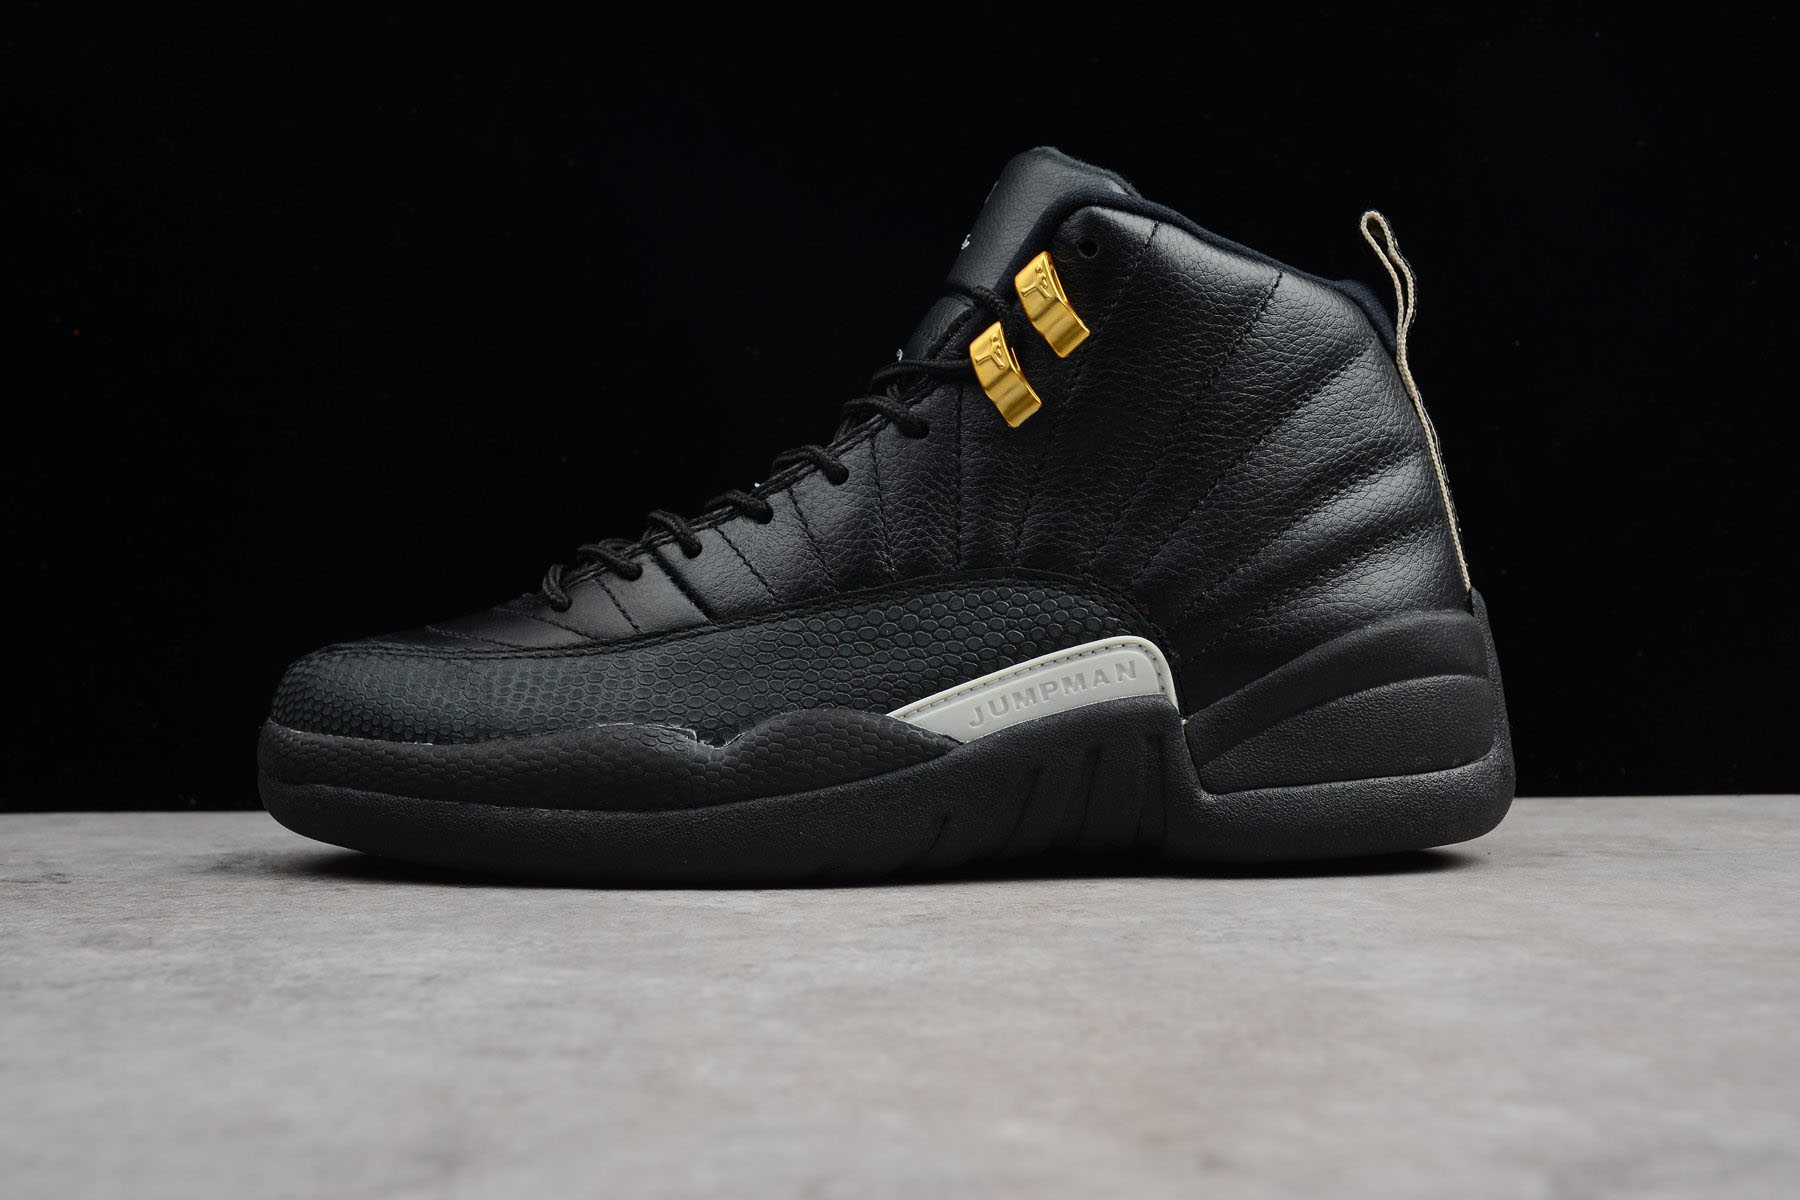 Air Jordan 12 The Master Black/Rattan-White-Metallic Gold 130690-013